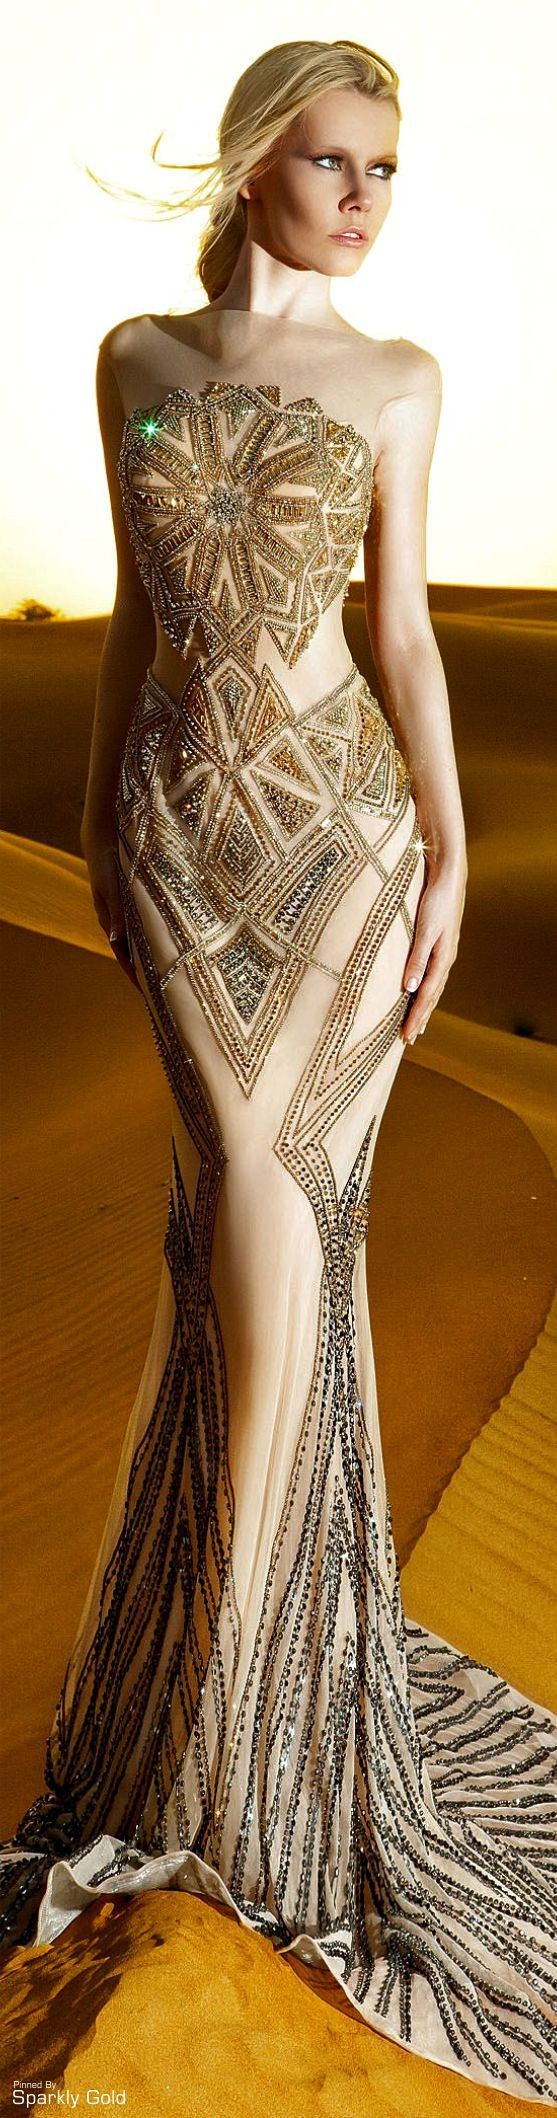 Dany Tabet S/S 2015                                                                                                                                                                                 More